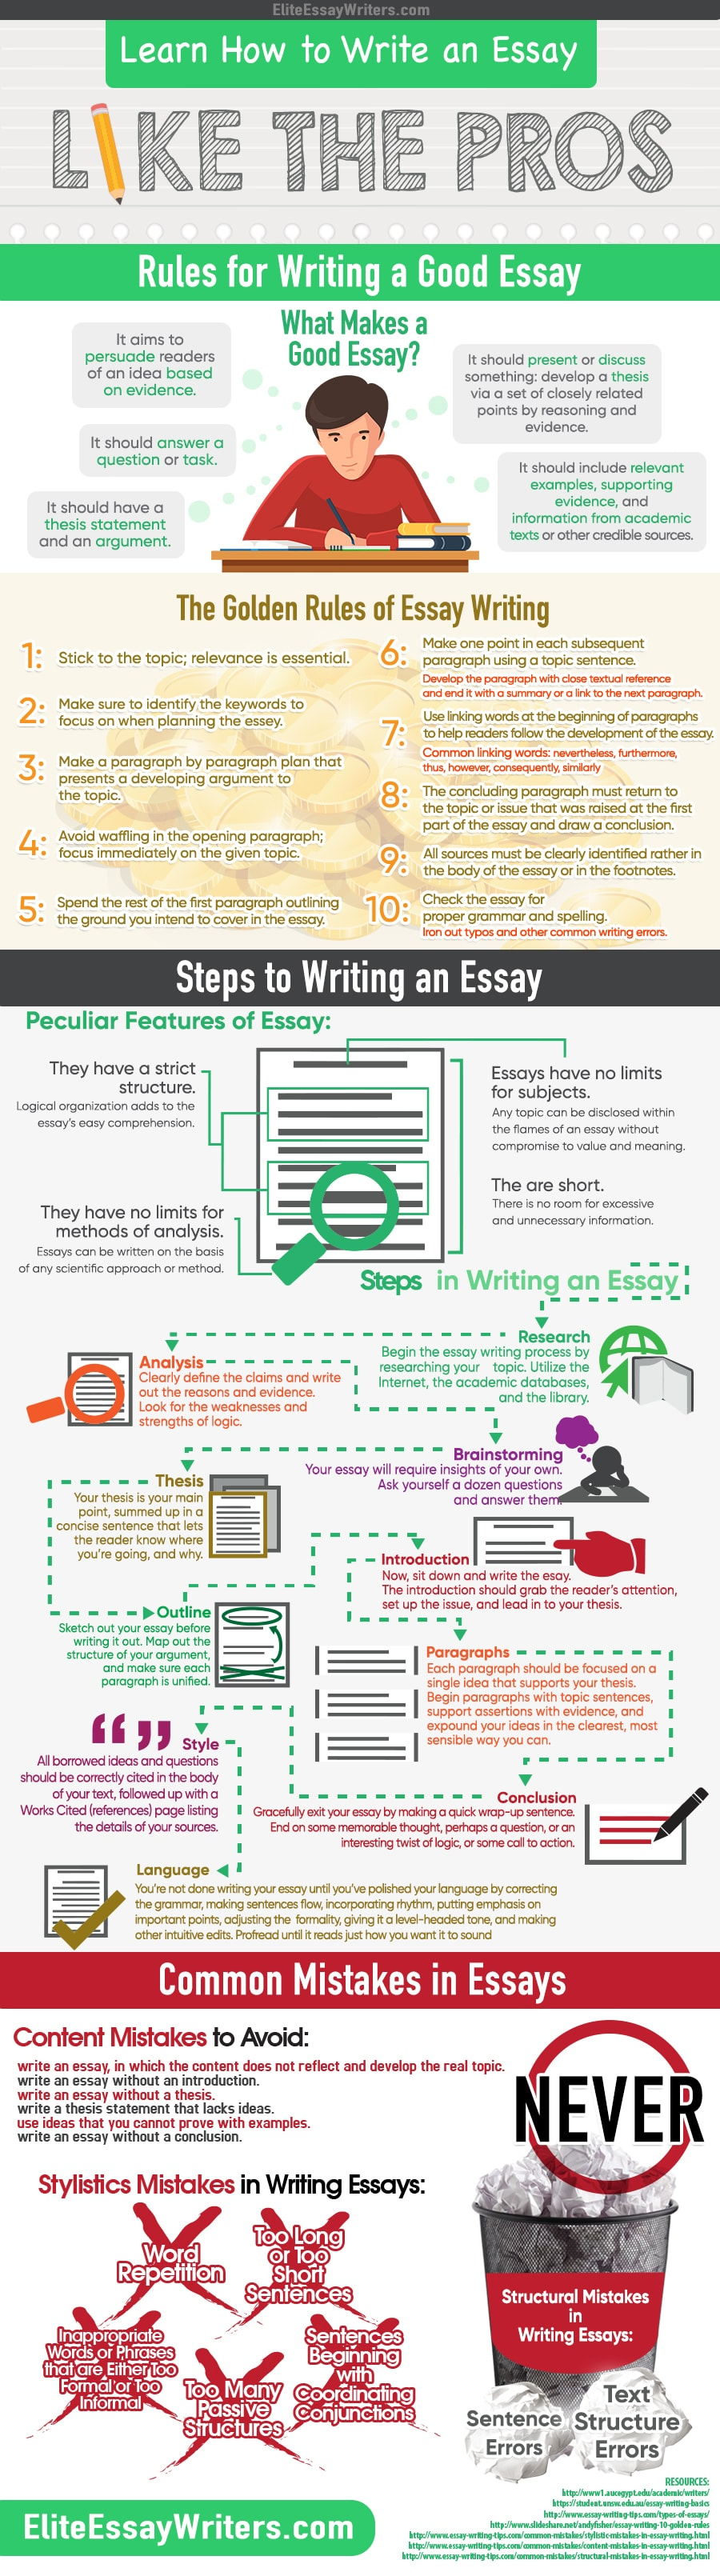 Top Tips on How to Write an Essay and How to Get Your